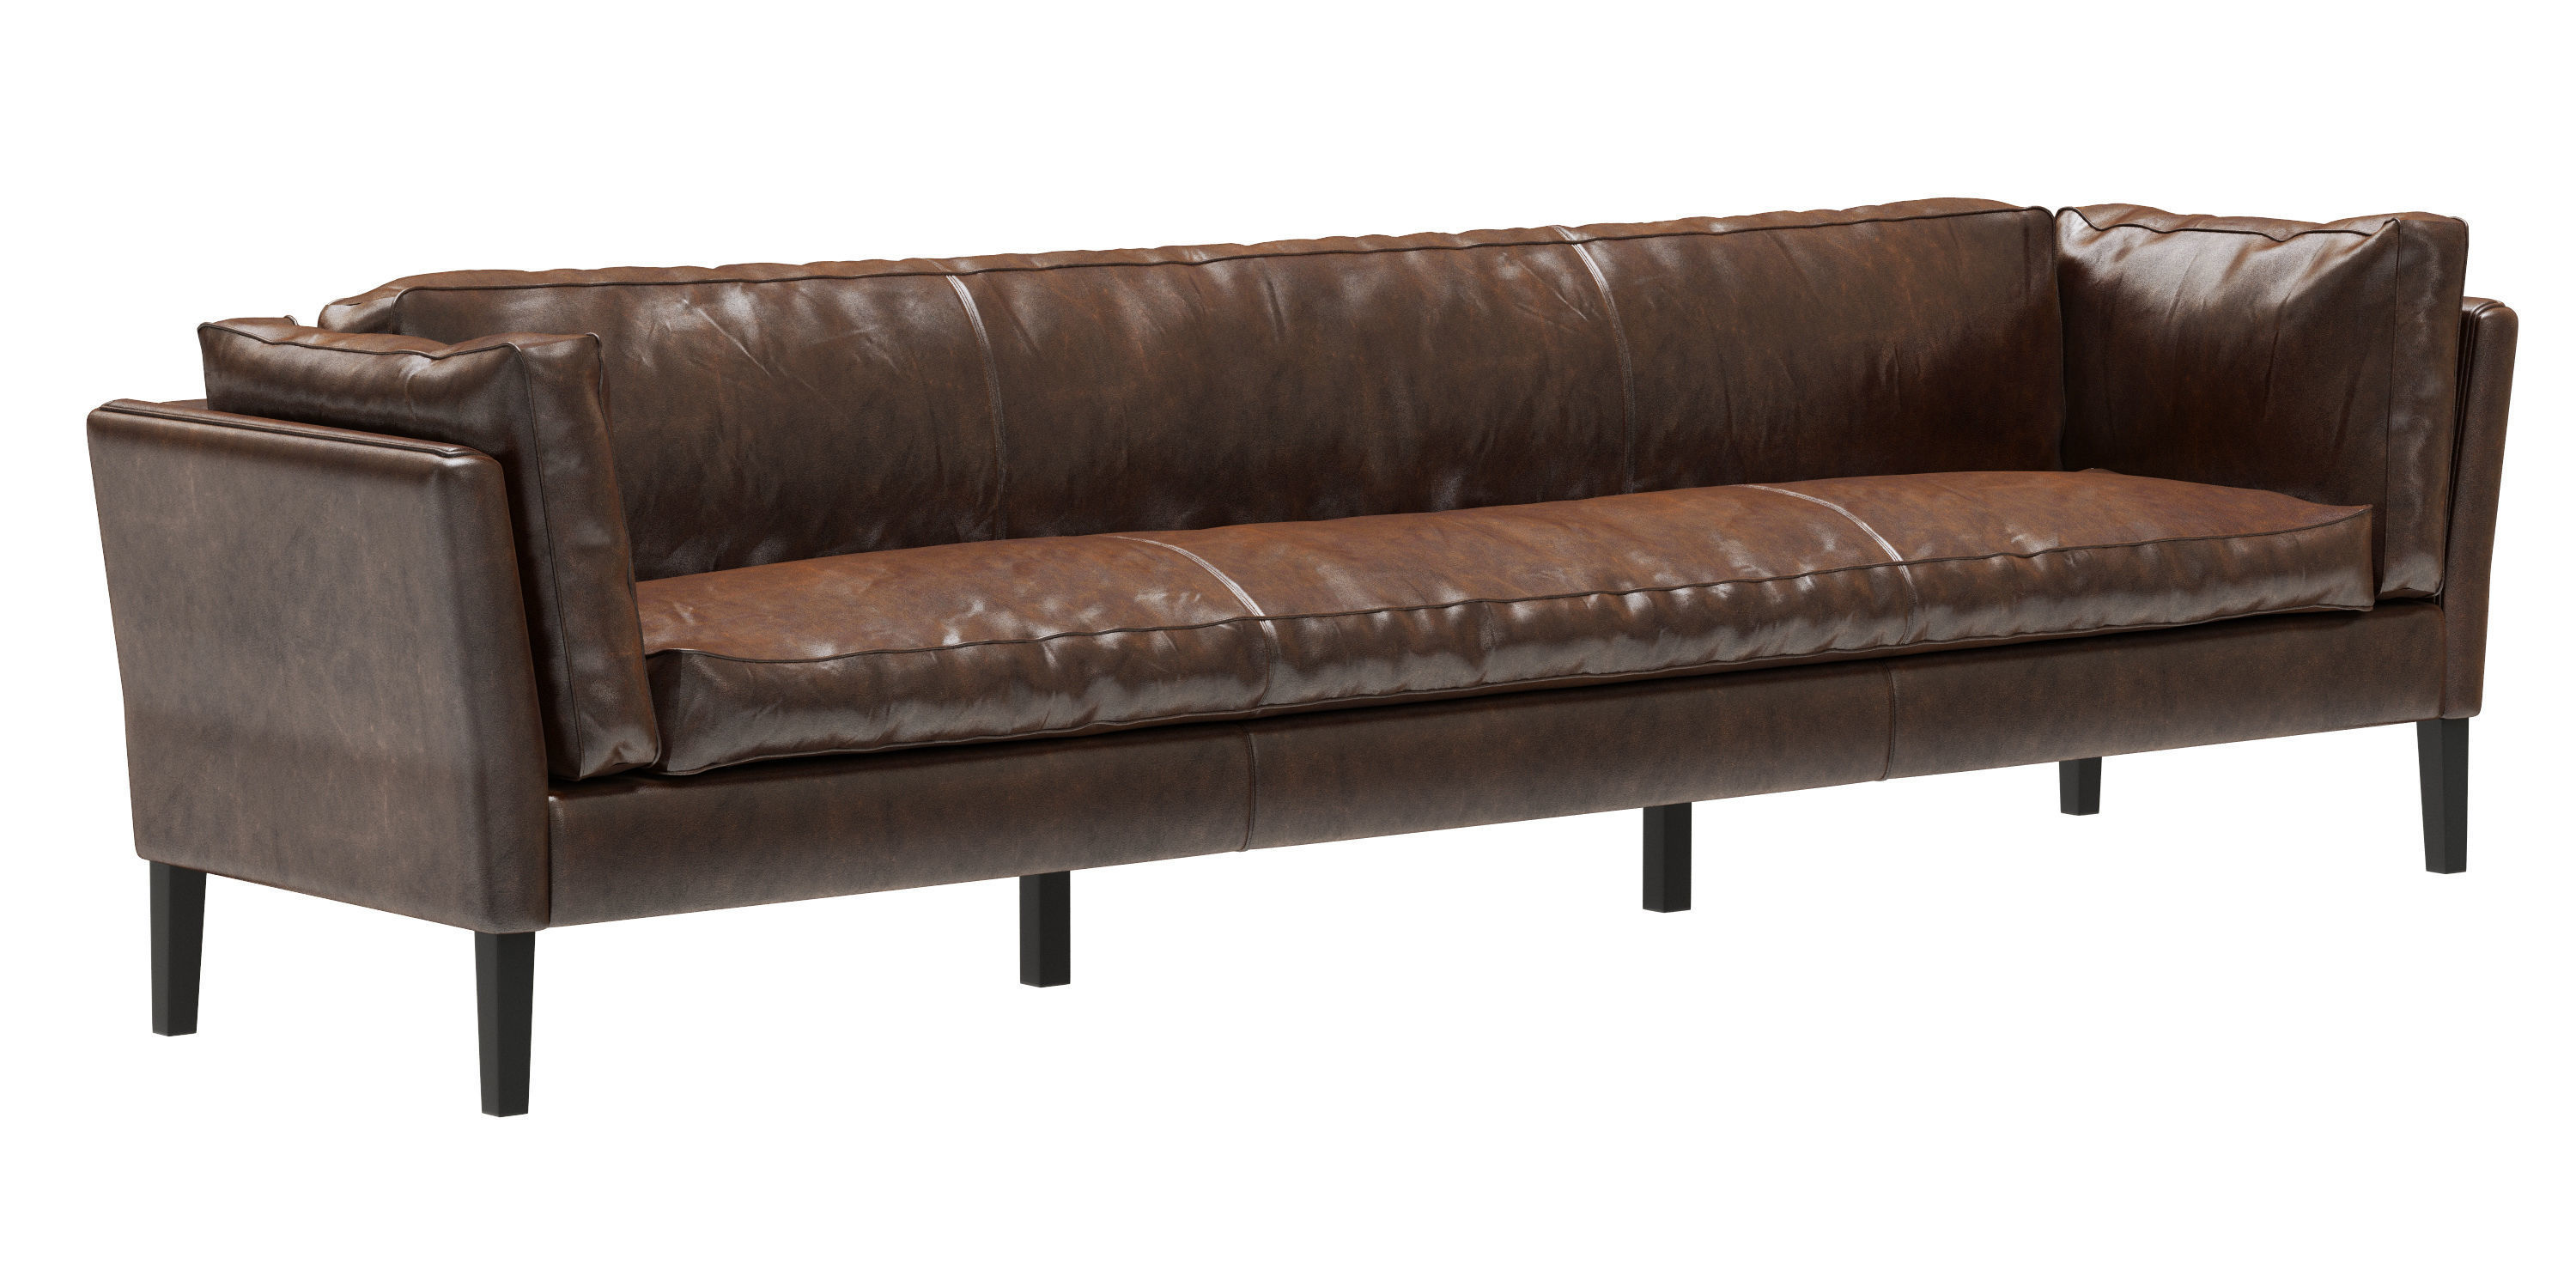 restoration hardware sorensen leather sofa 3d model